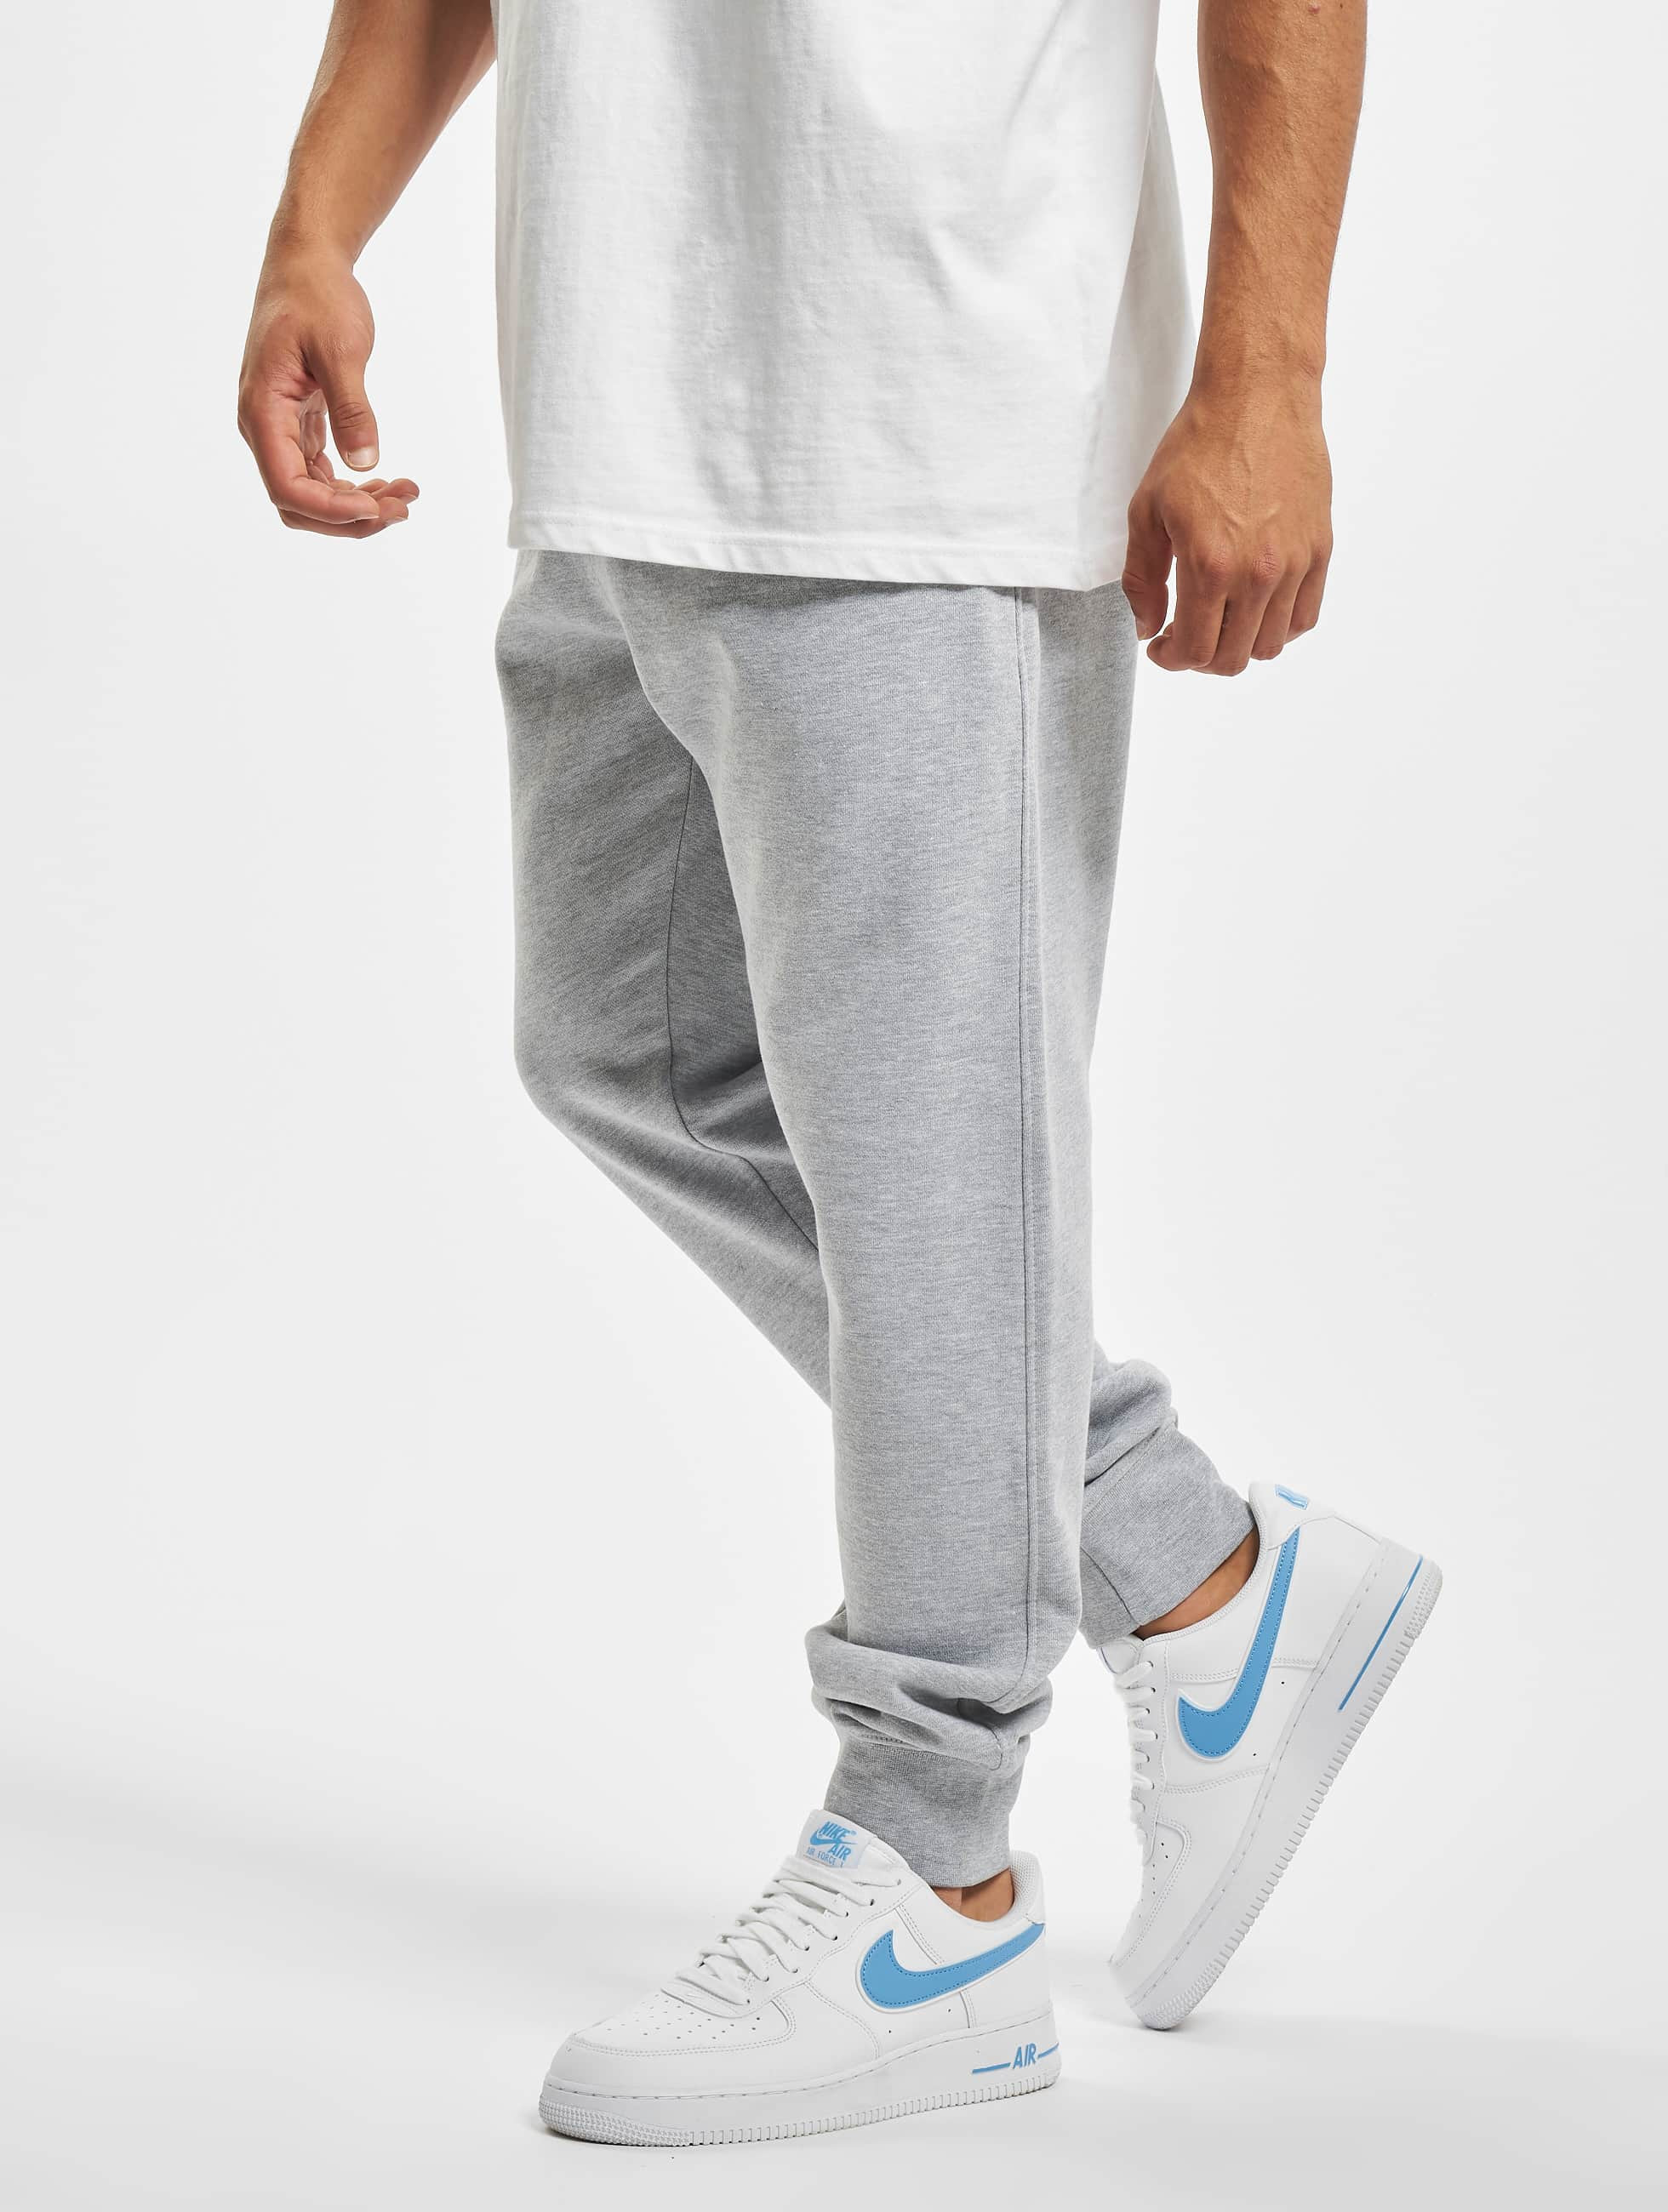 DEF / Sweat Pant Dimi in grey 6XL